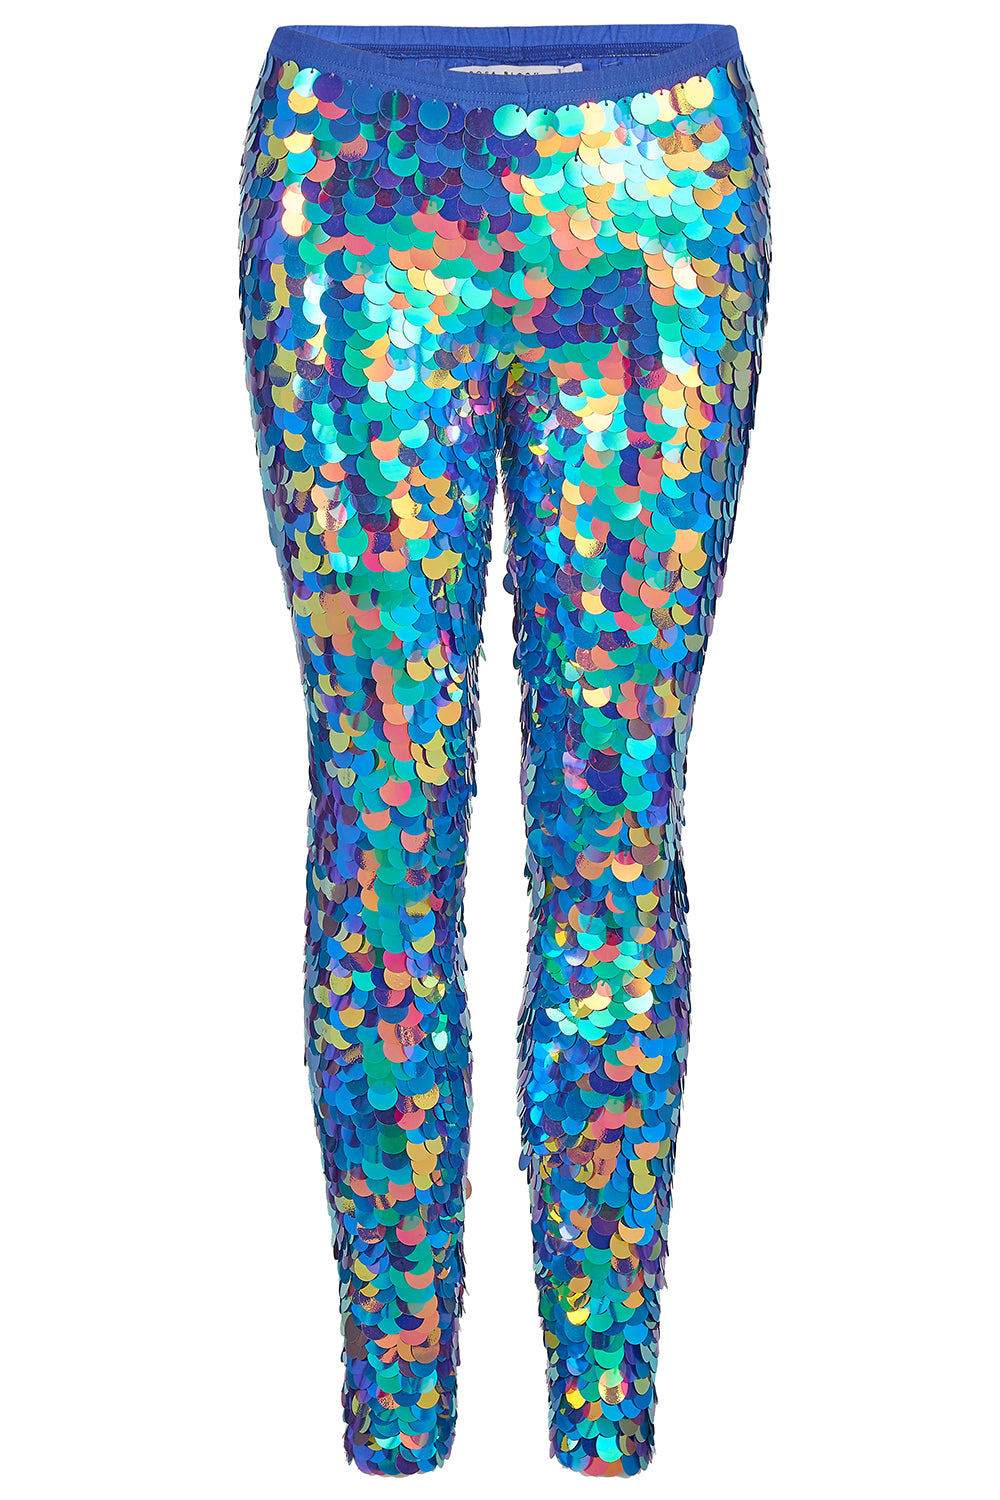 INDUS SEQUIN LEGGINGS - JEWEL